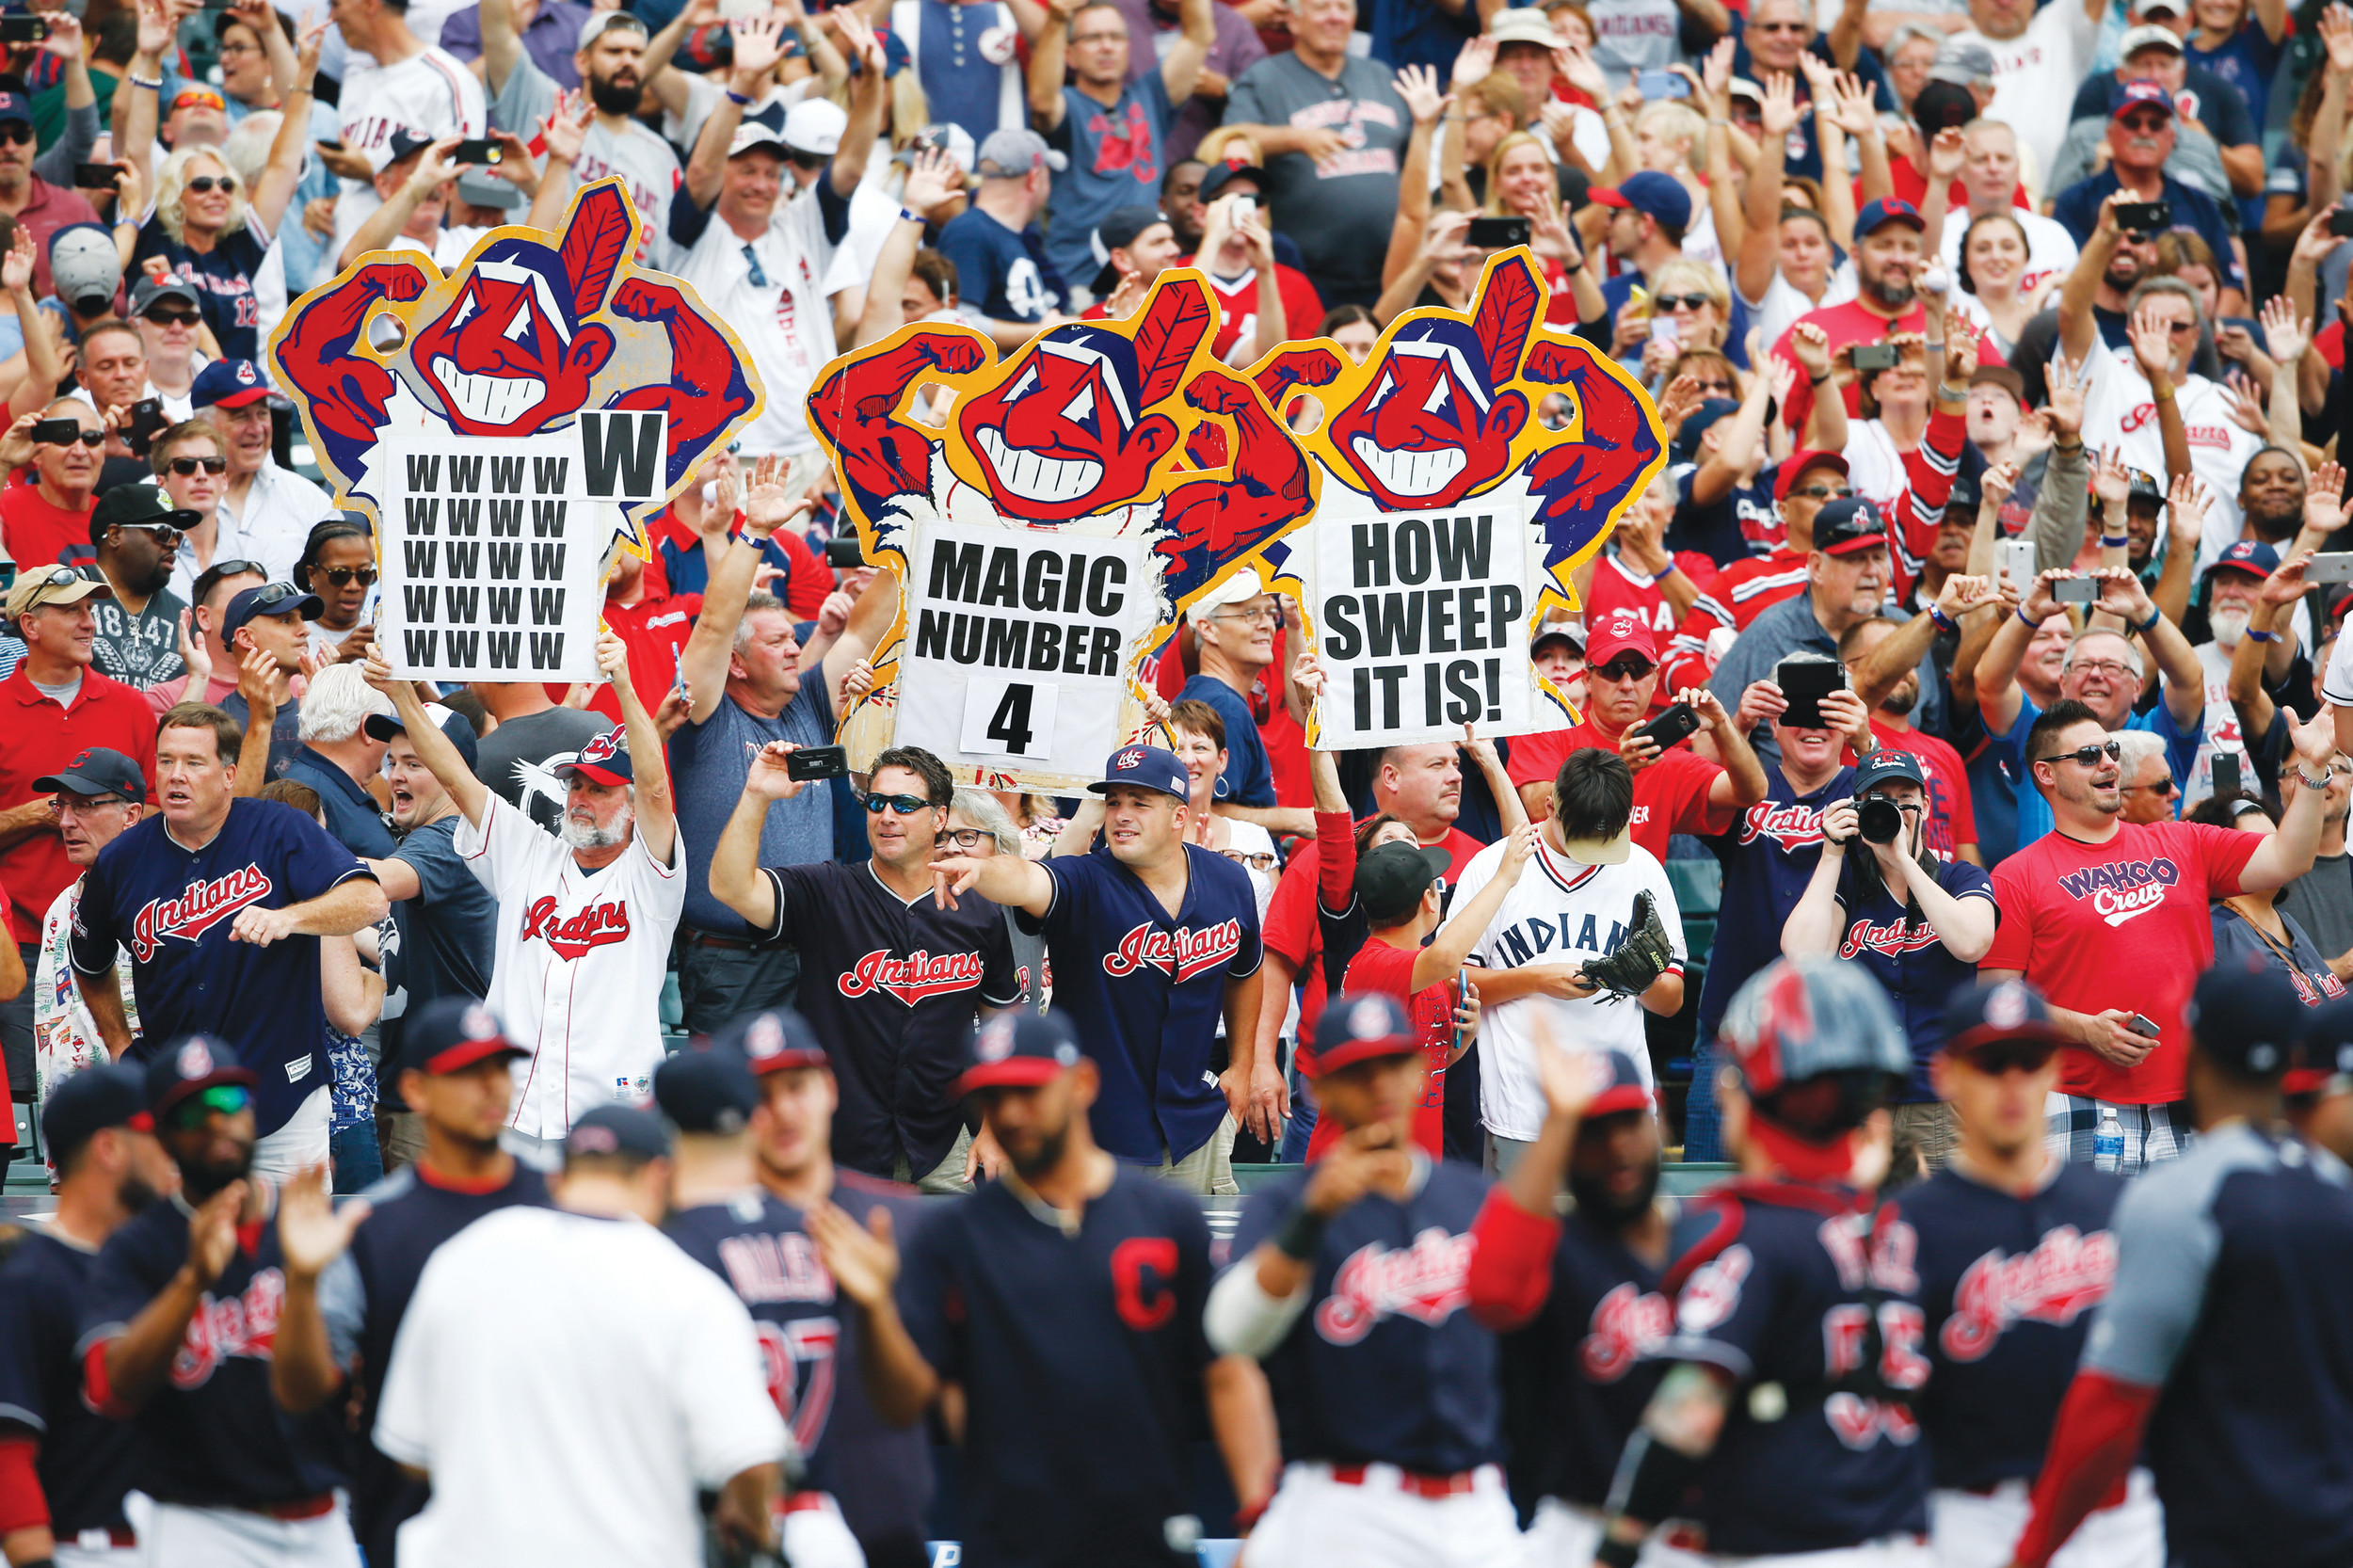 Cleveland Indians fans celebrate a 5-3 victory over the Detroit Tigers in a game Wednesday in Cleveland. The Indians set the American League record with 21 consecutive wins.